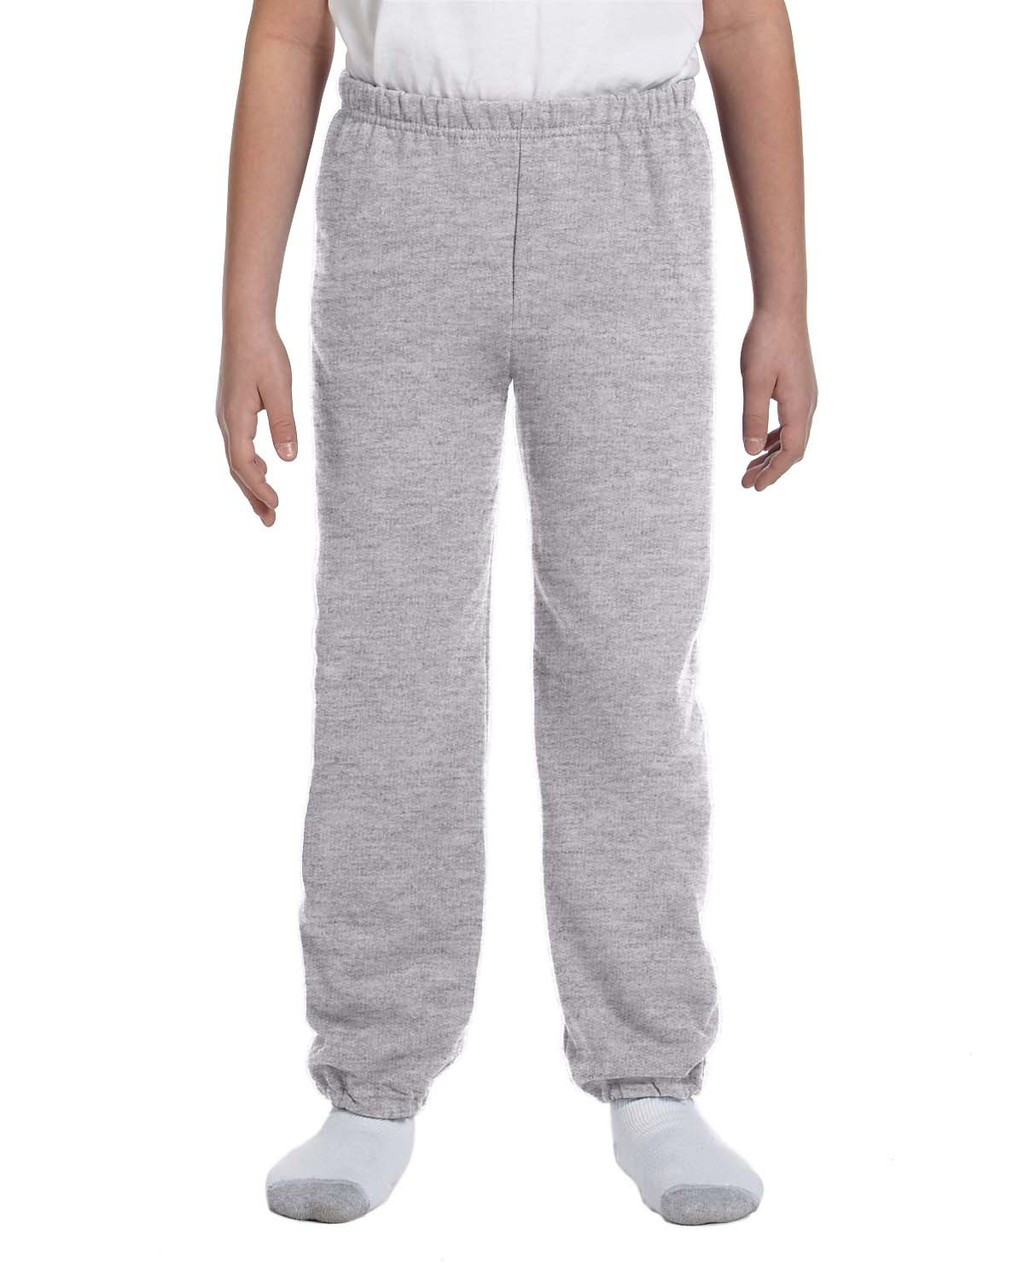 Sport Grey - G182B Gildan Heavy Blend Youth 50/50 Sweatpants | Blankclothing.ca